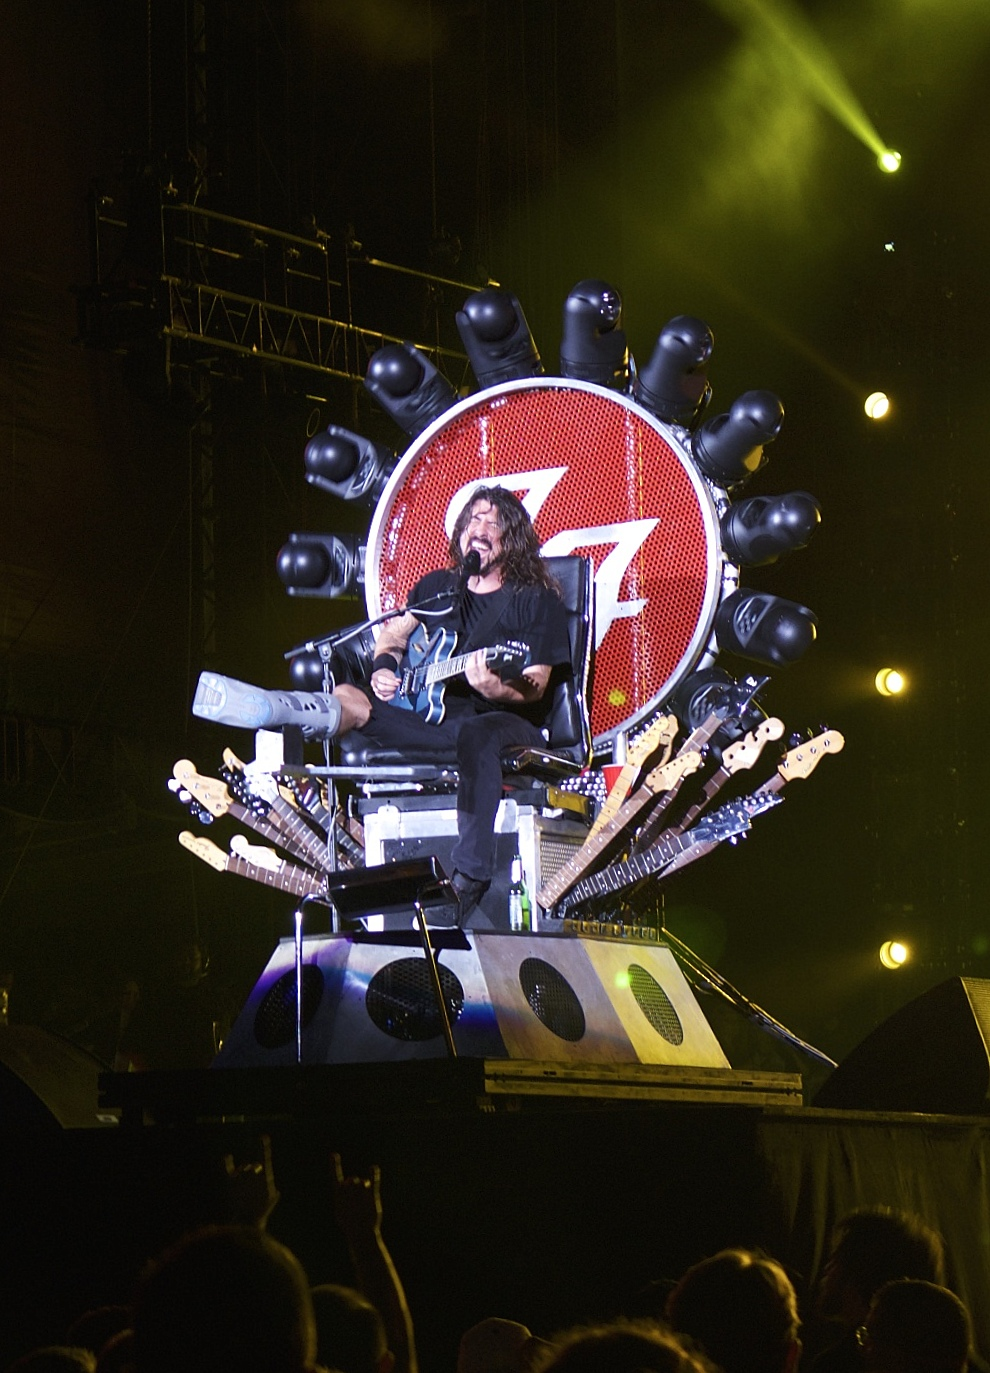 Grohl on the Throne